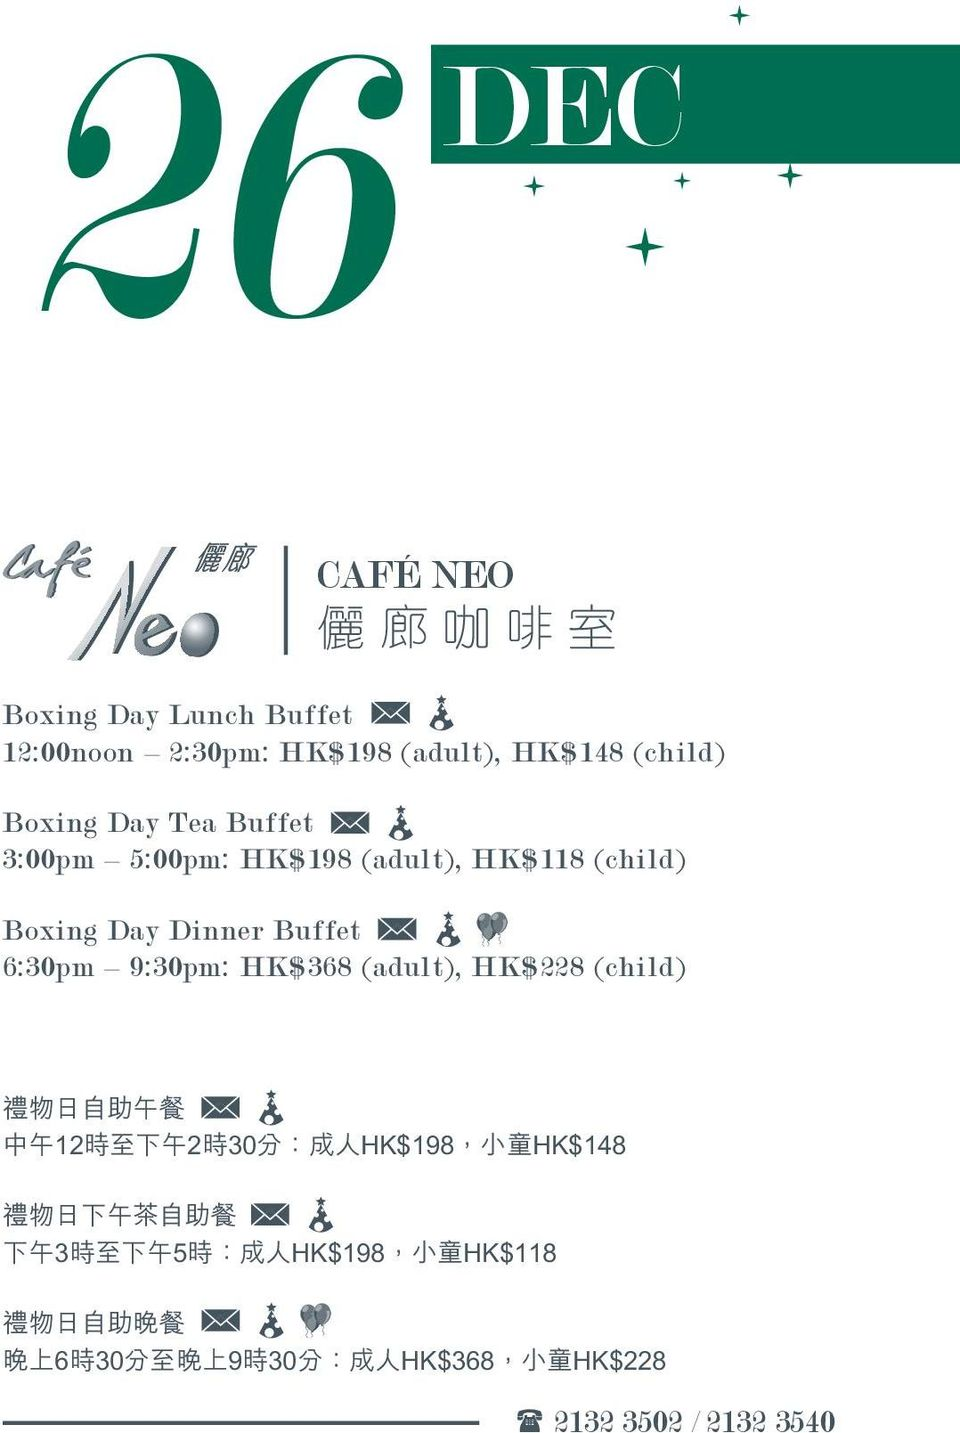 5:00pm: HK$198 (adult), HK$118 (child) Boxing Day Dinner